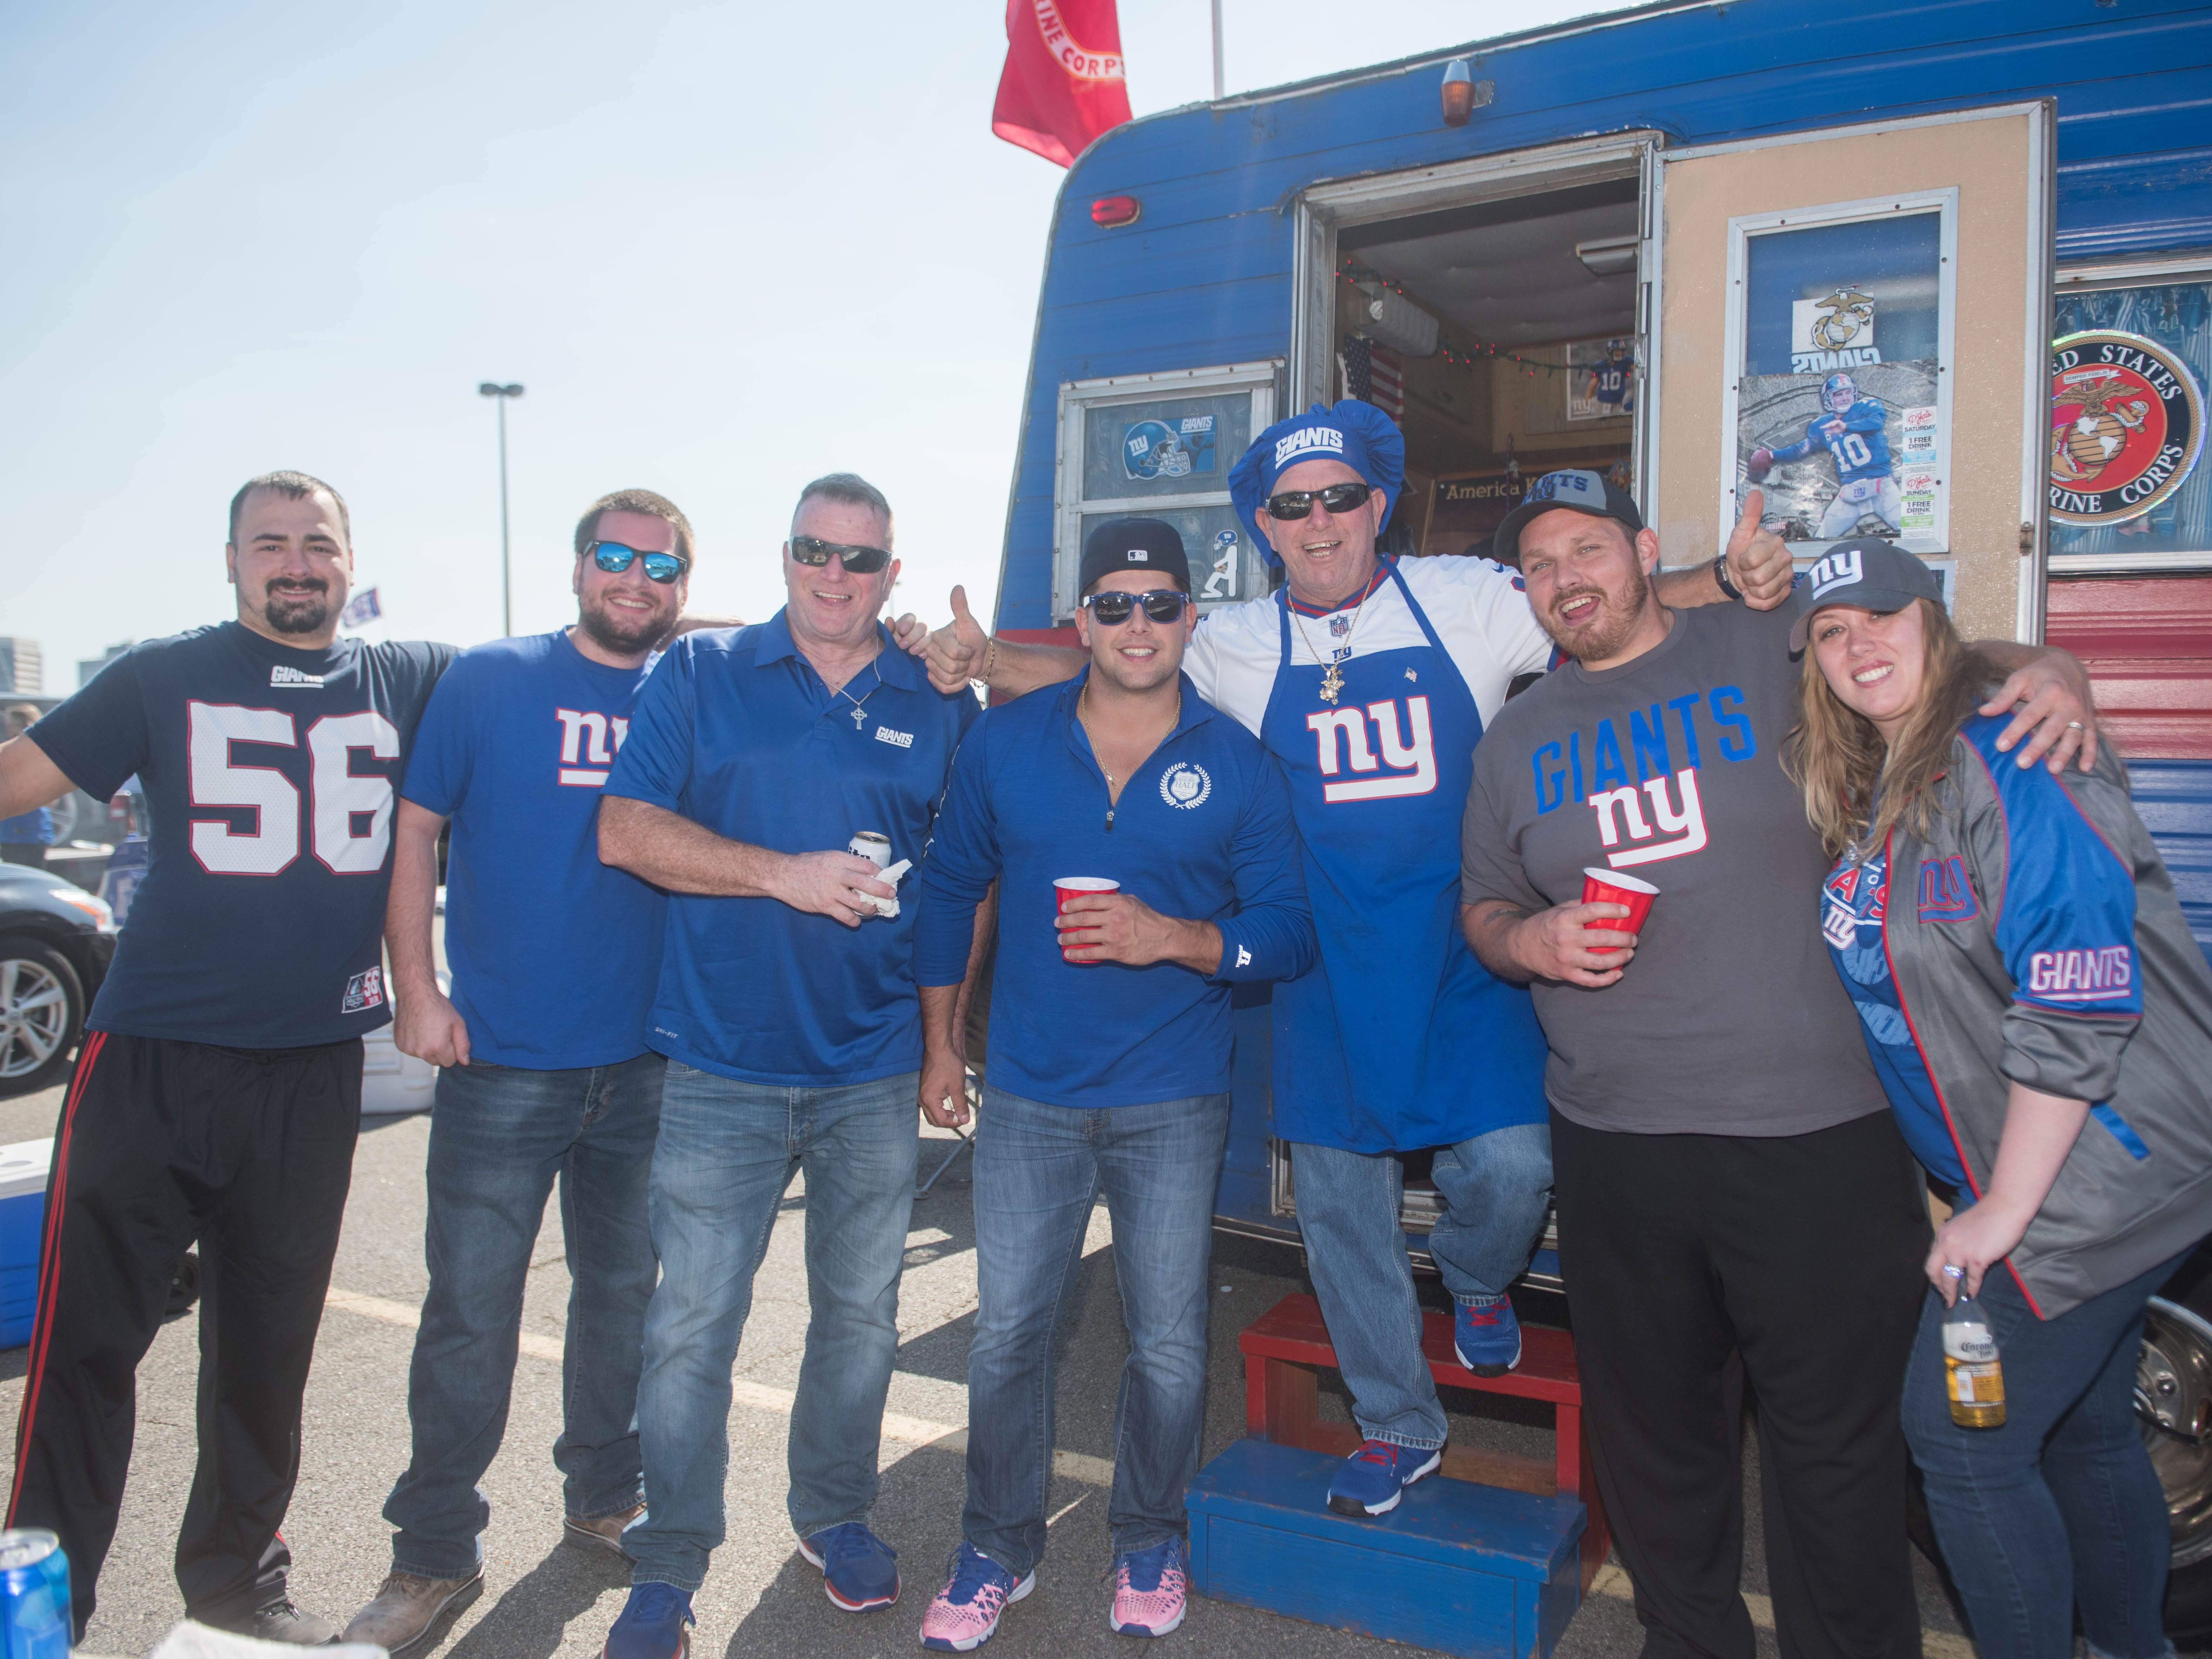 Travis, Brian, Mike, Mark Jr, Mark Sr, Christoper and Jackie at the Giants vs. Saints tailgate party, Sunday, Sept. 30, 2018.